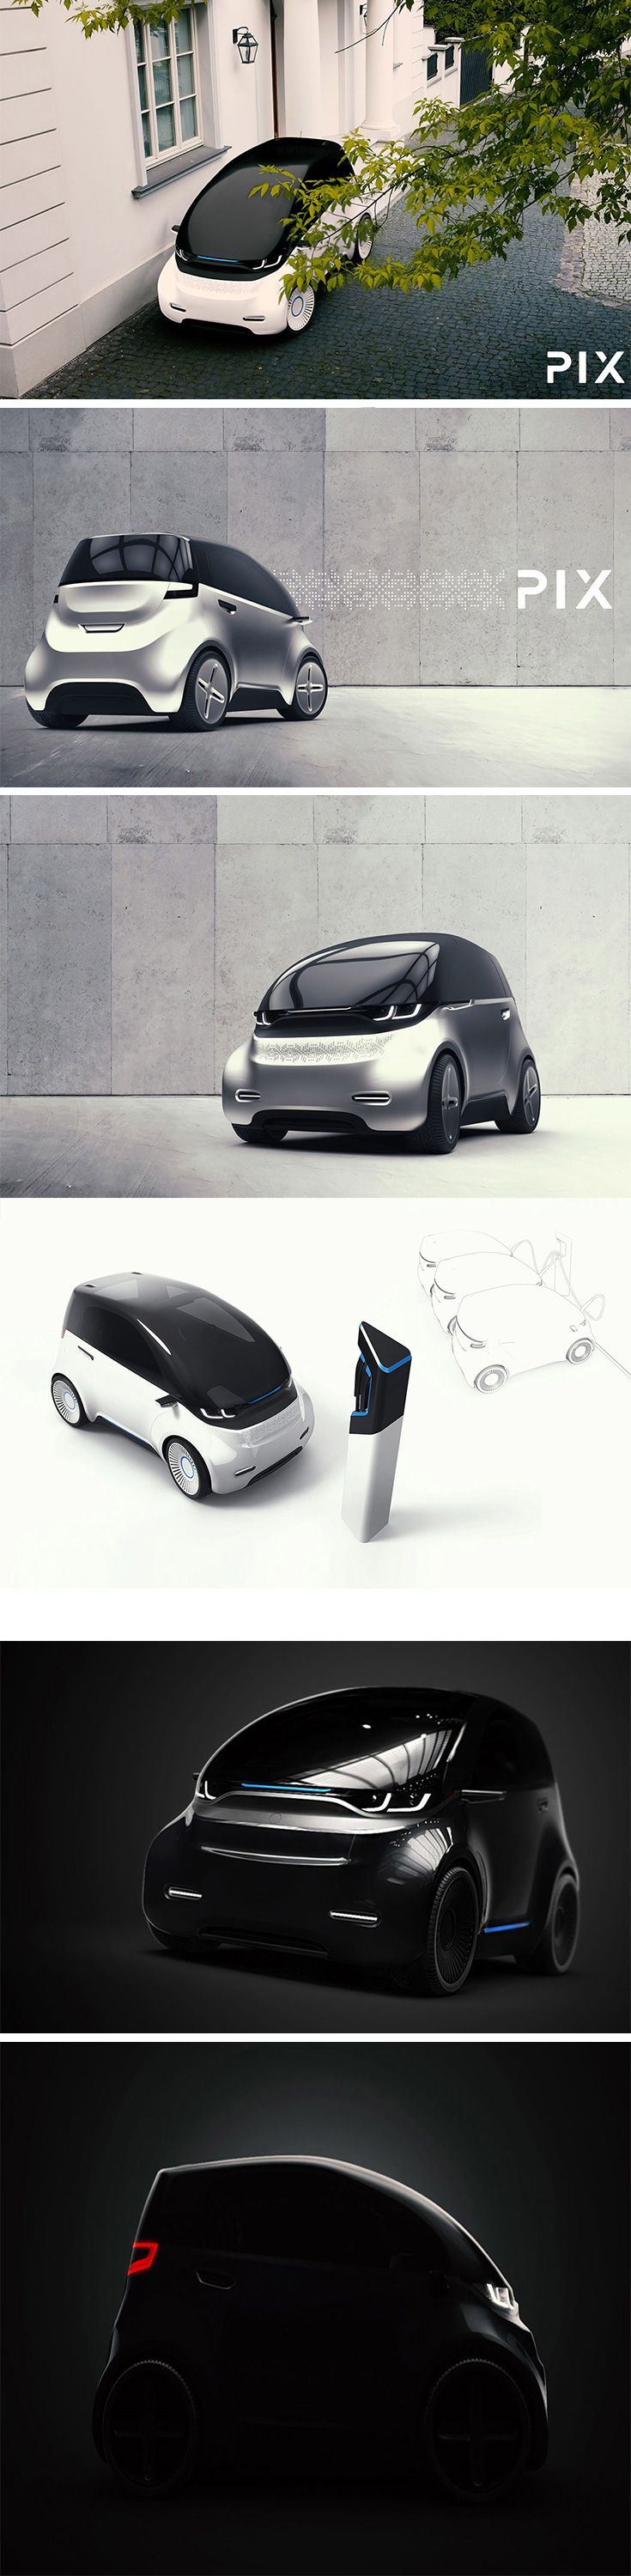 Introducing pix the first car concept to come from polish electromobility company 2sympleks they re calling it a short electric urban vehicle and that